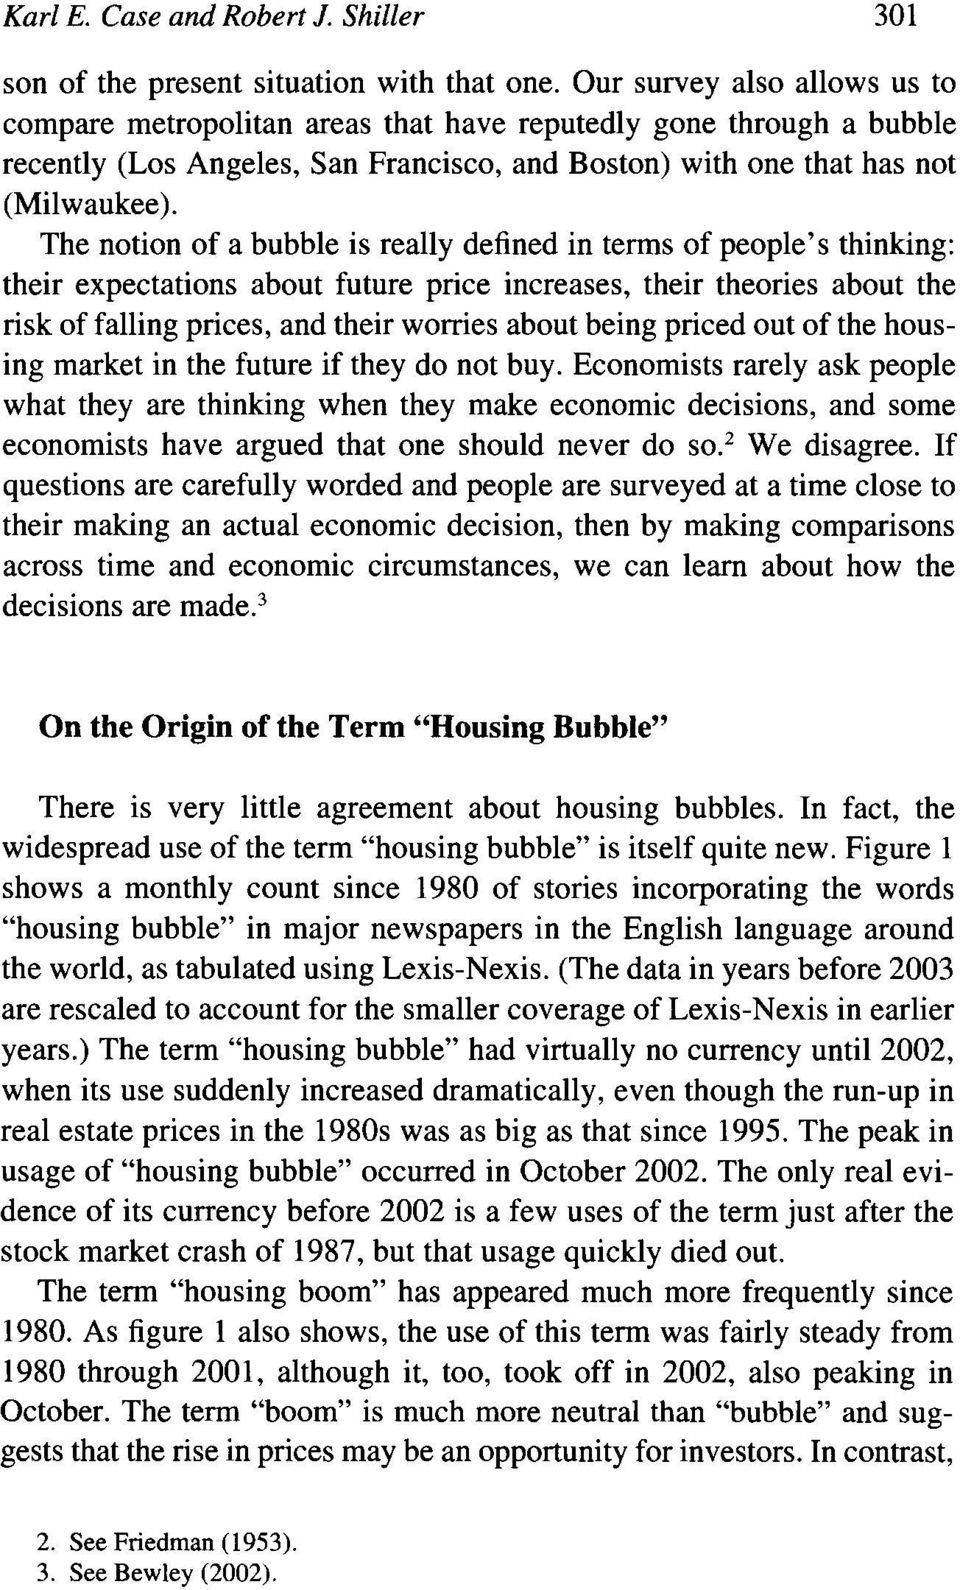 The notion of a bubble is really defined in terms of people's thinking: their expectations about future price increases, their theories about the risk of falling prices, and their worries about being